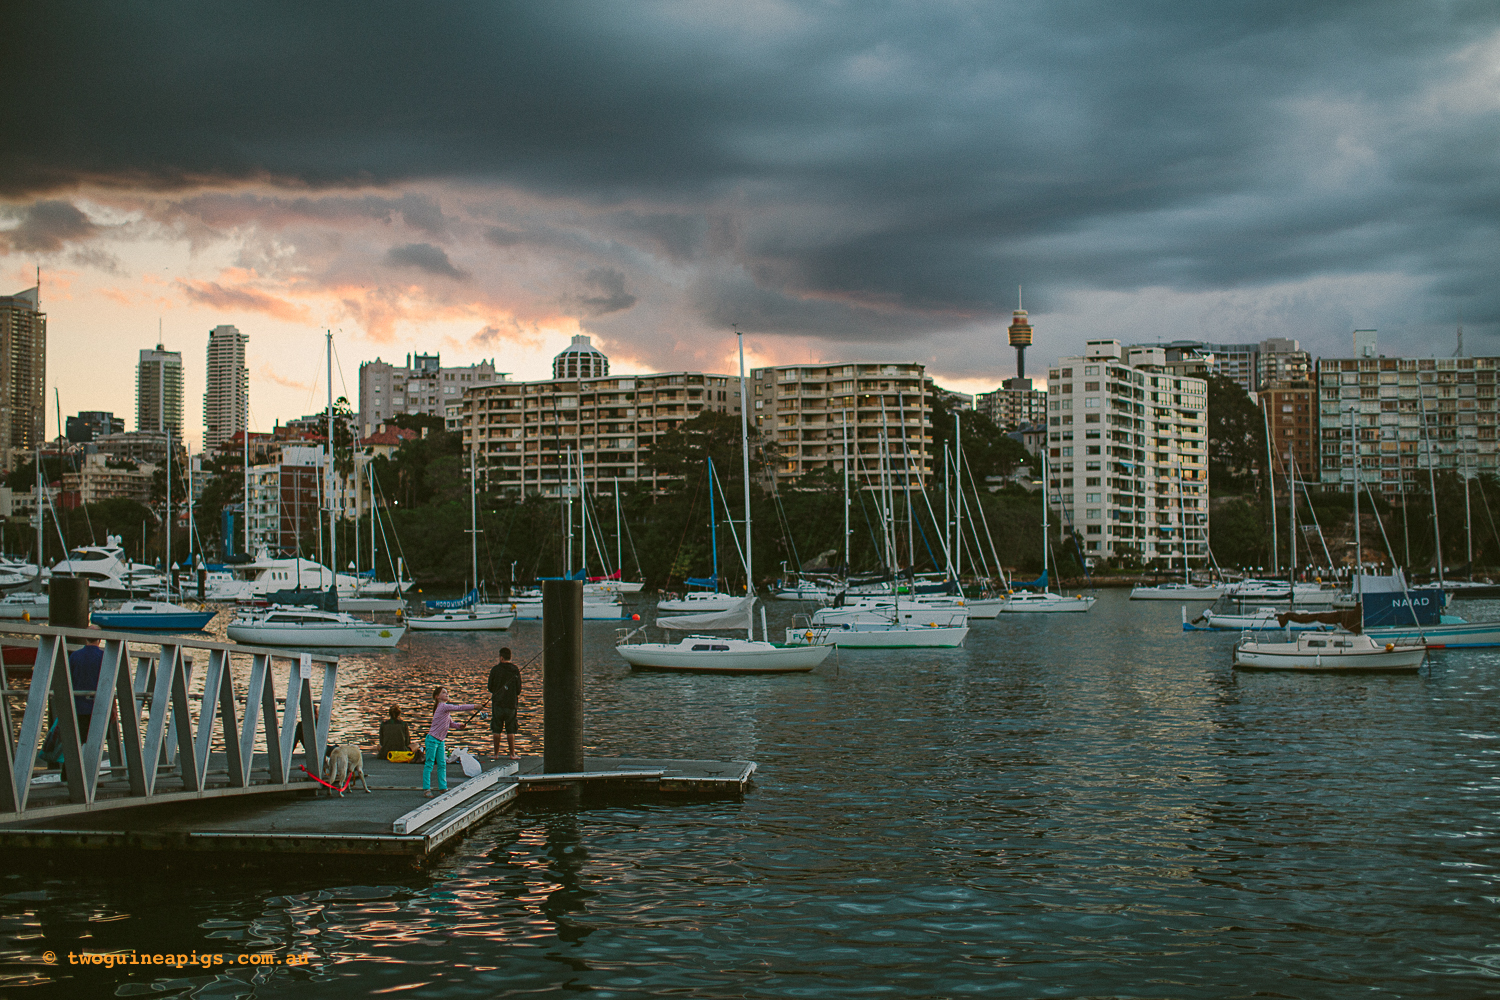 twoguineapigs_rushcutters_bay_winter_sunset_landscapes_1500-18.jpg